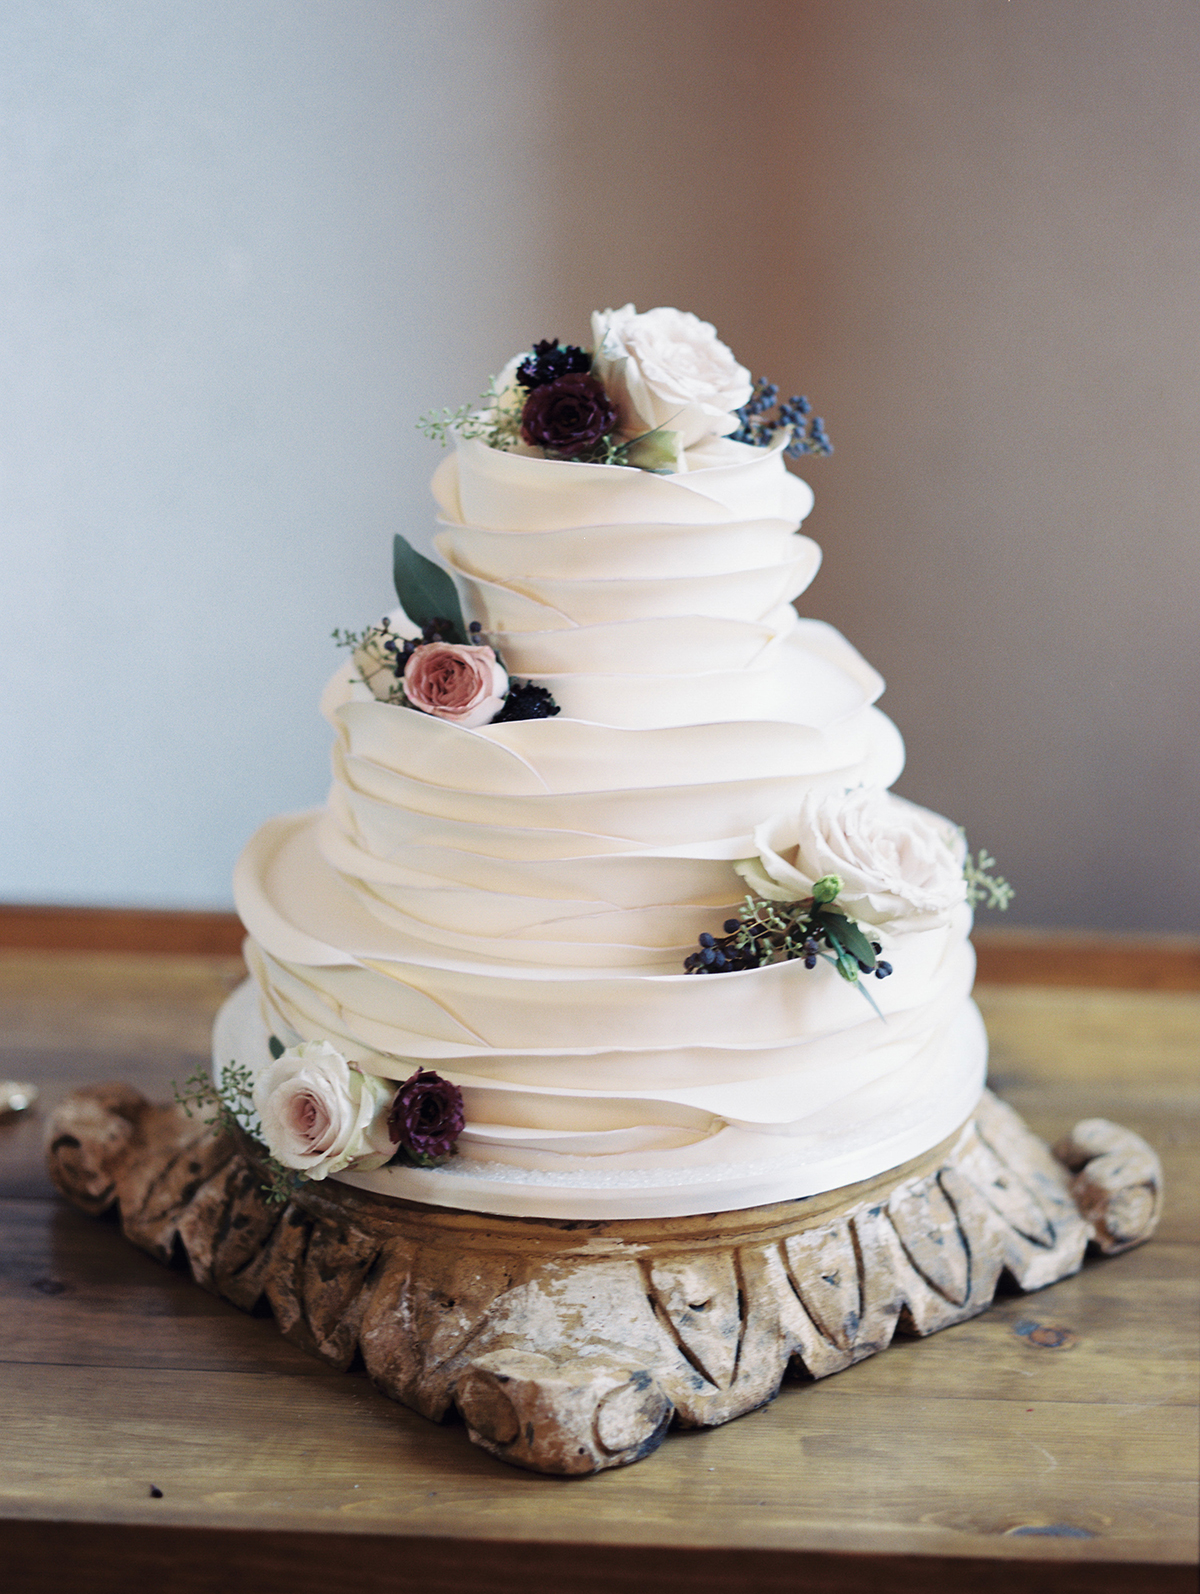 Our Most Popular Wedding Cakes of 2017 #weddingcakes #desserttables #weddingtrends